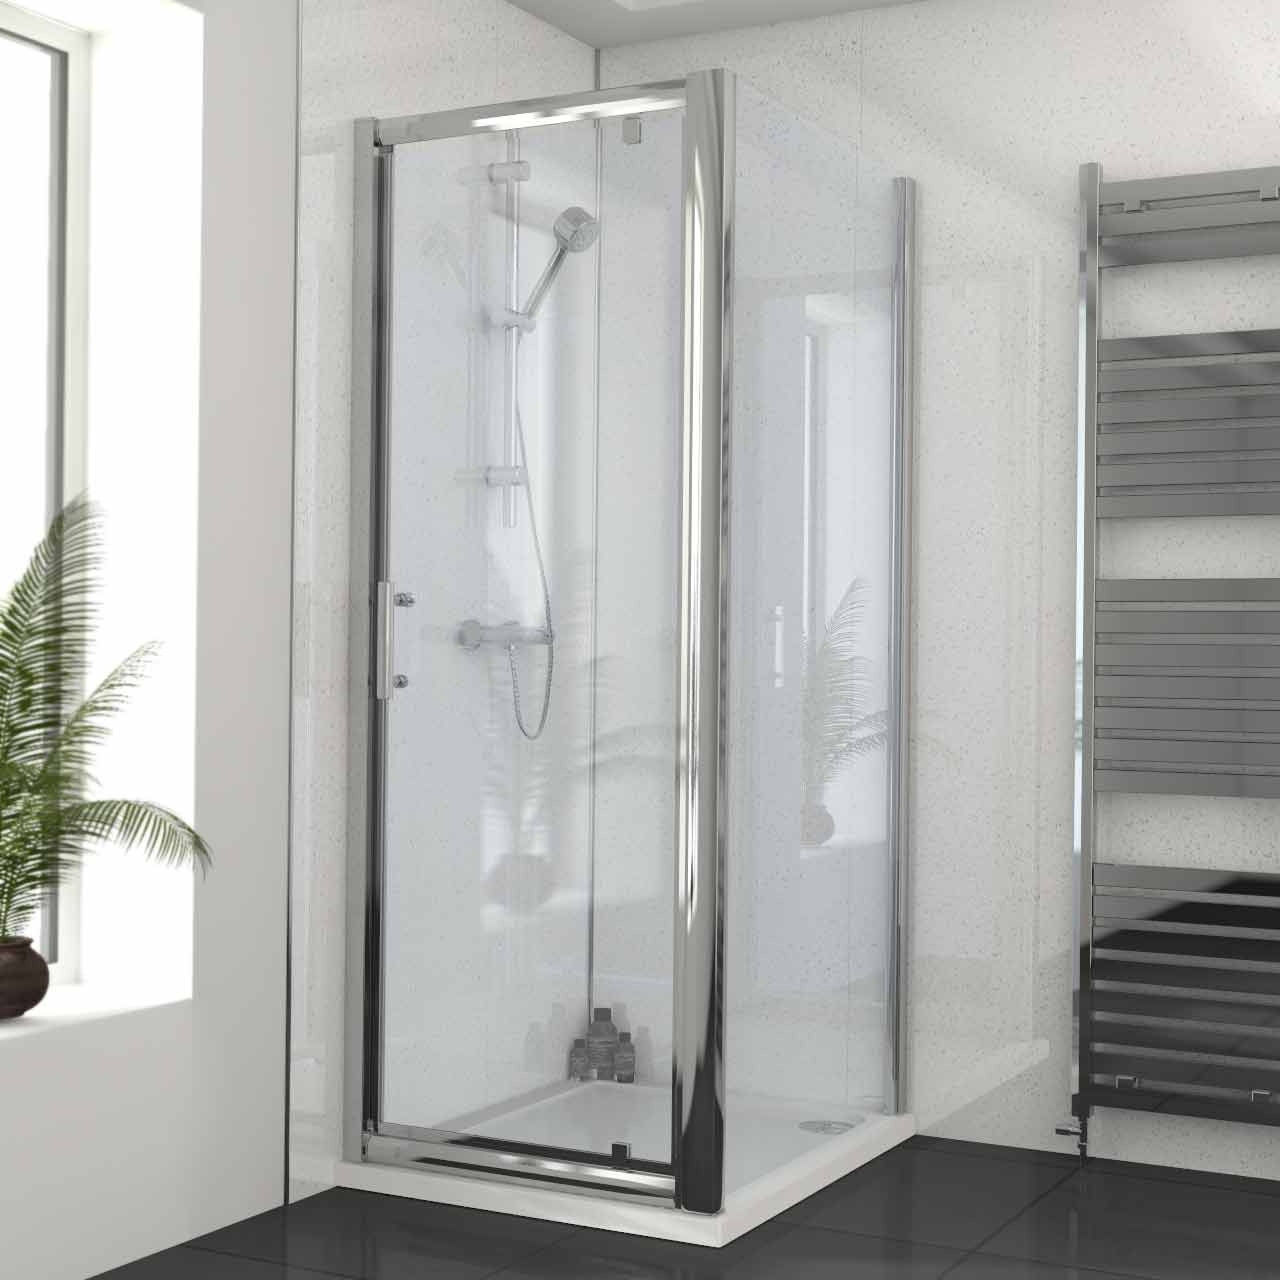 Series 6 760 x 900 Pivot Door Enclosure